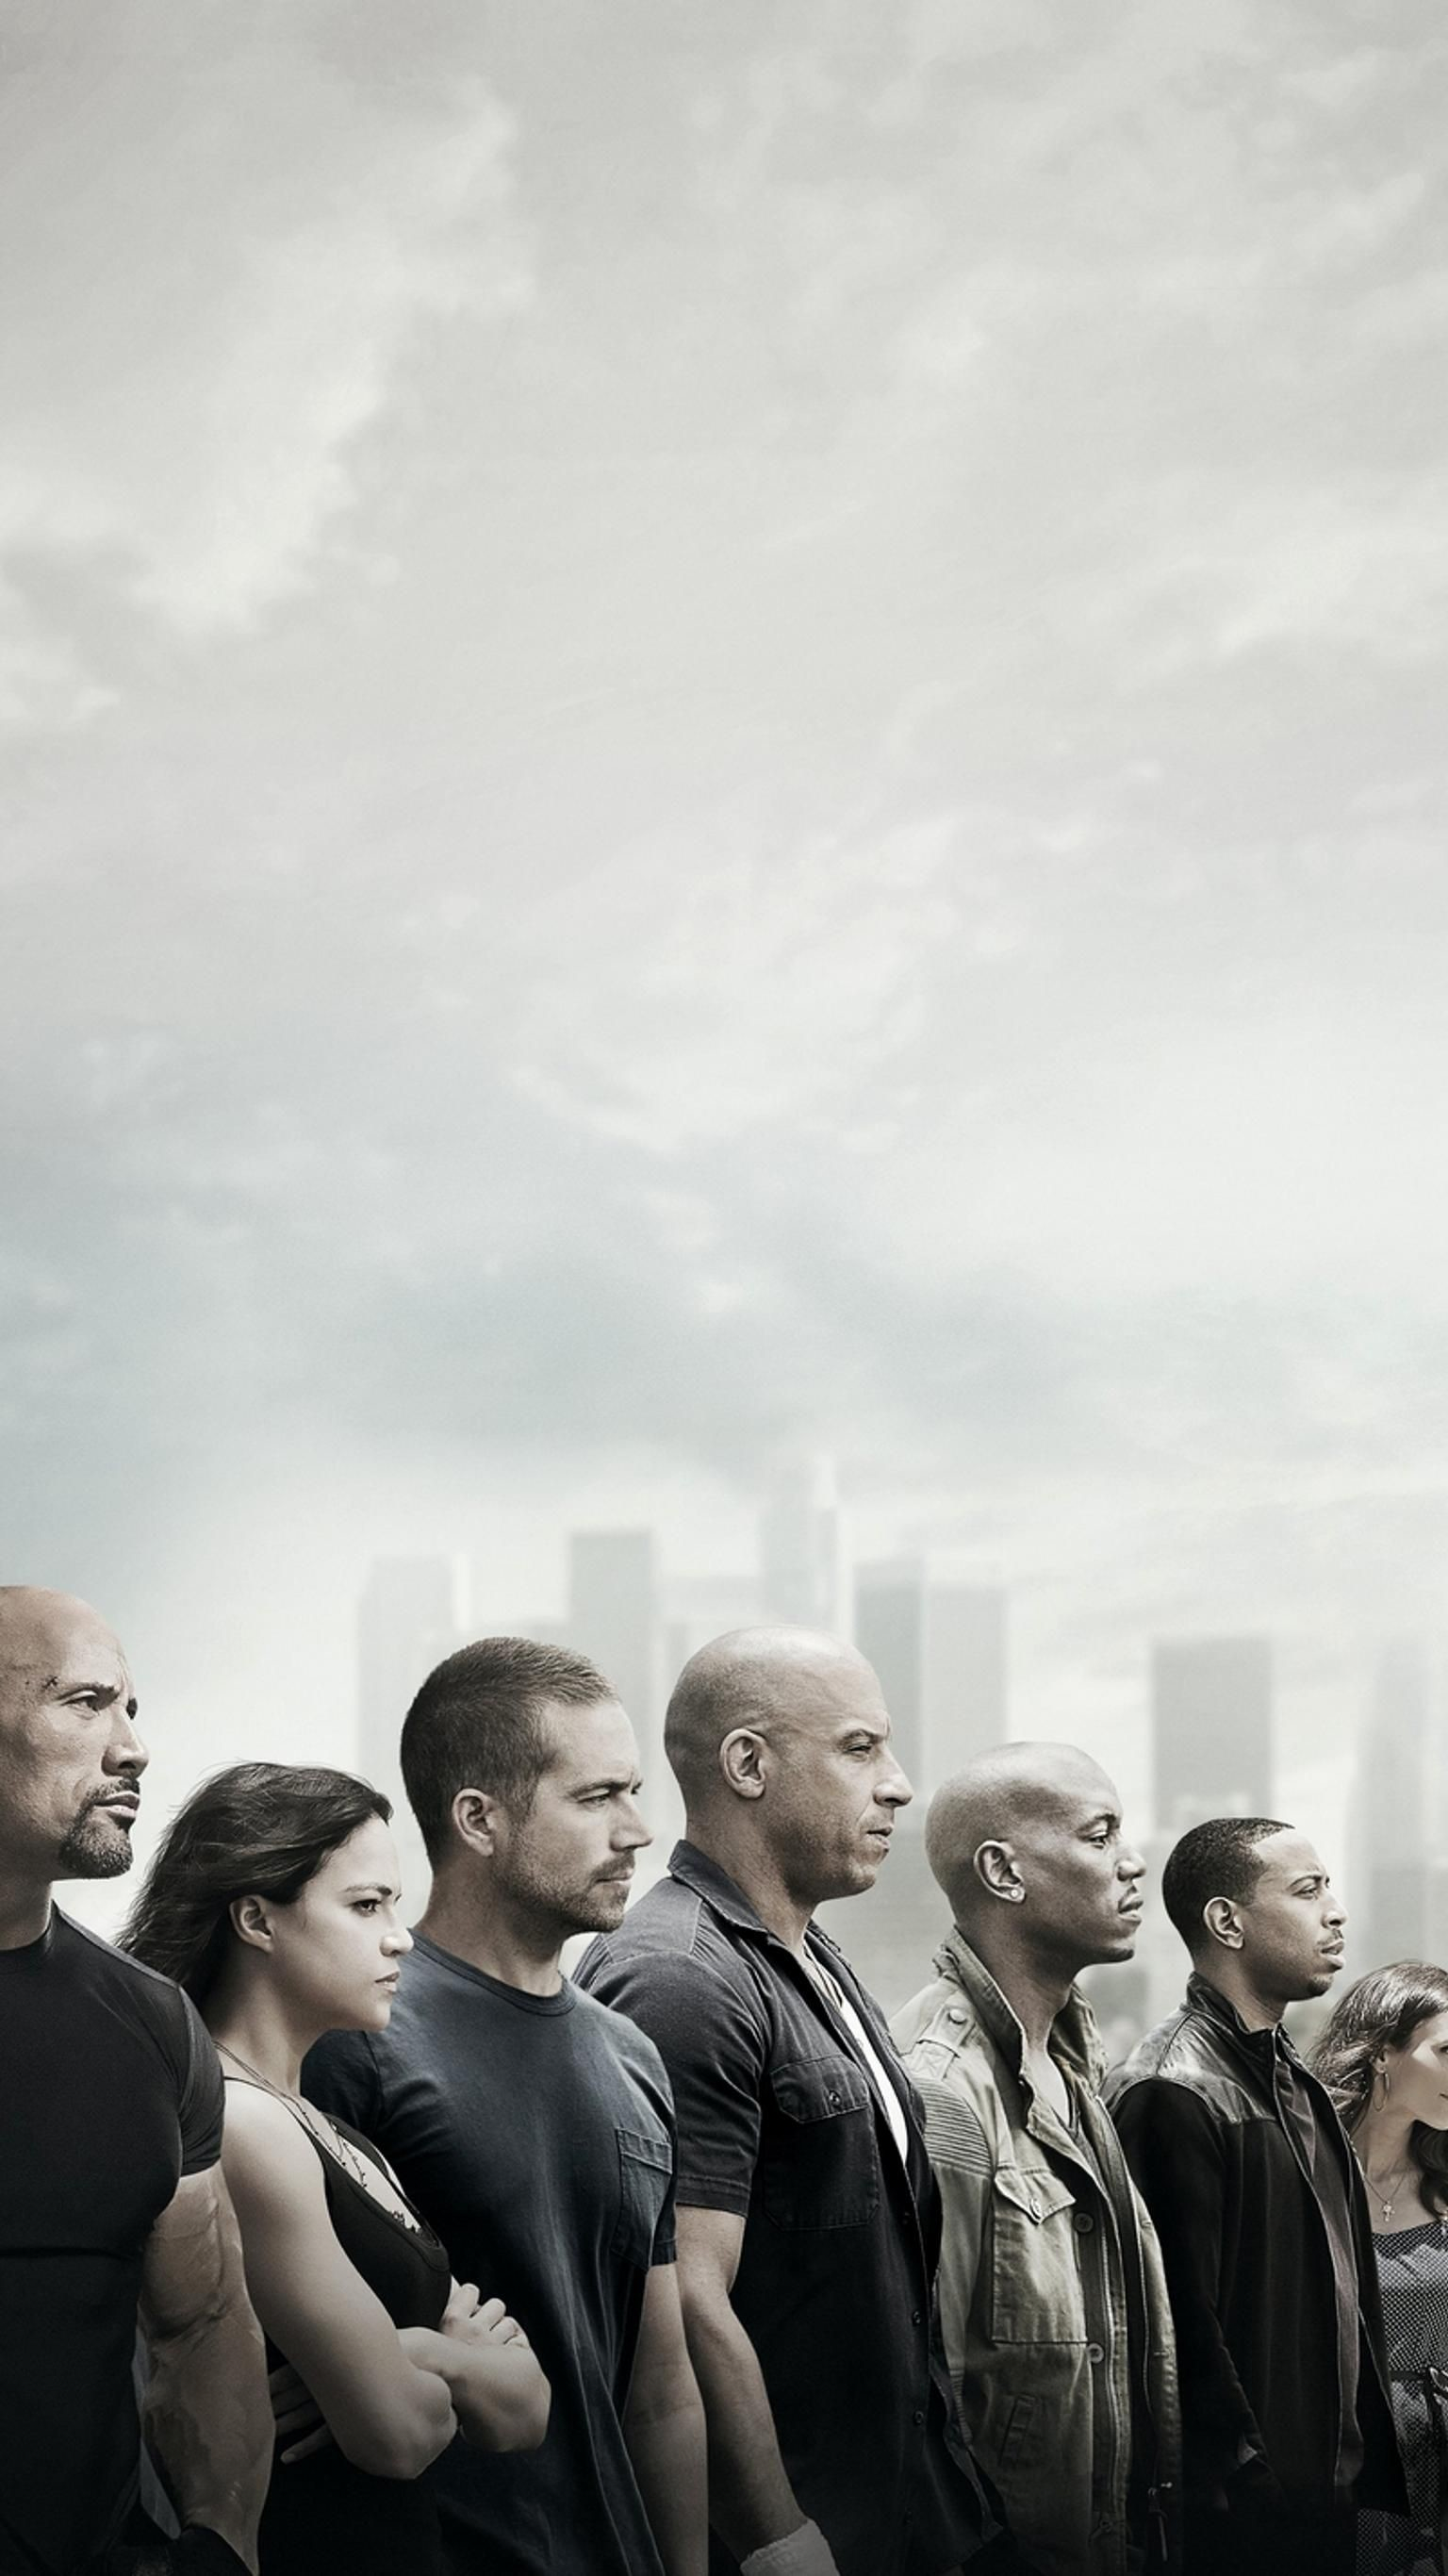 Fast and Furious 7 Wallpaper (79+ images)